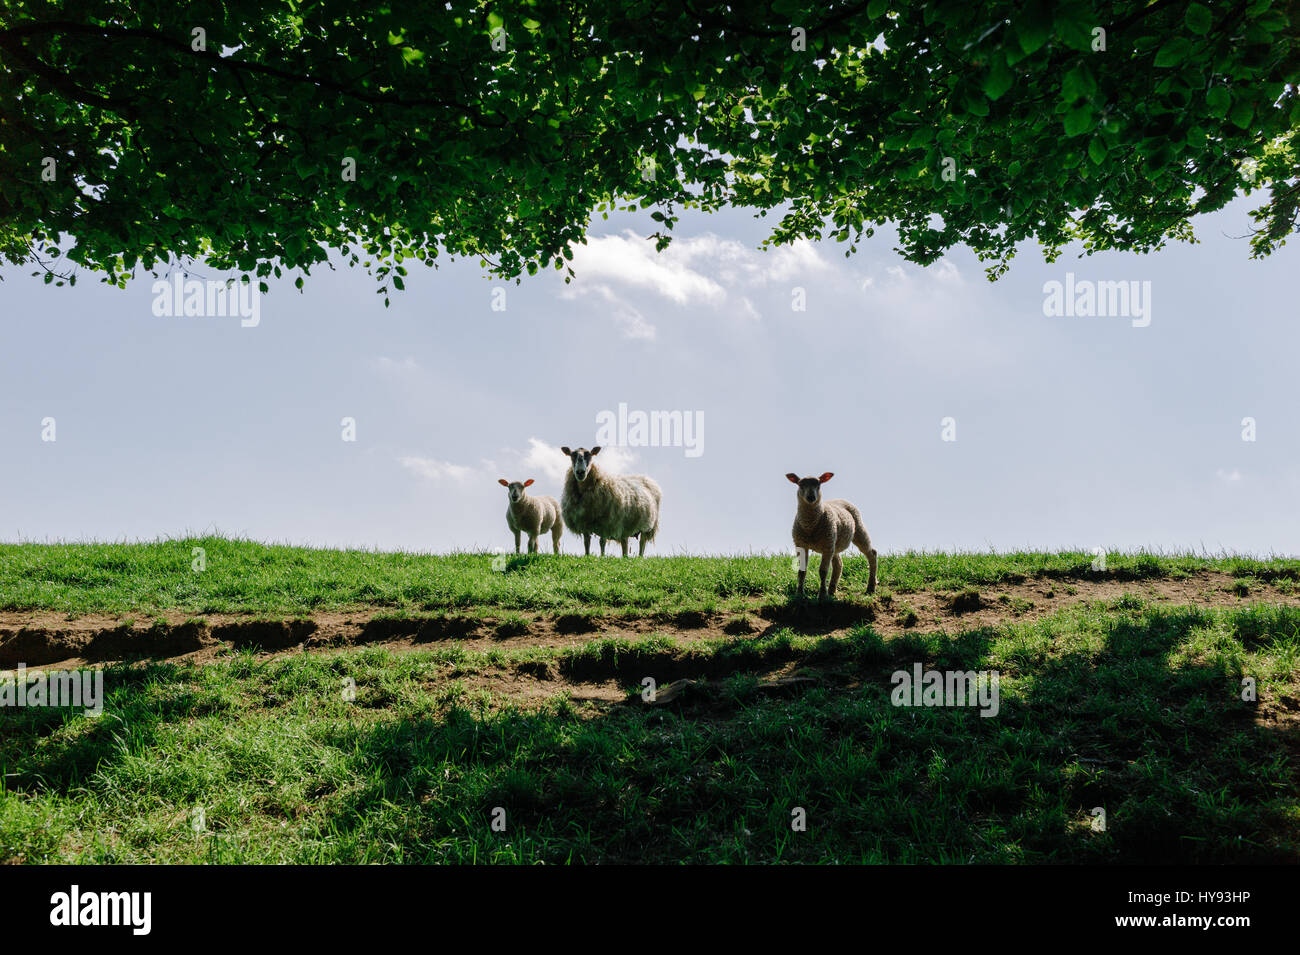 Two lambs with their mother in a green field in Spring. - Stock Image